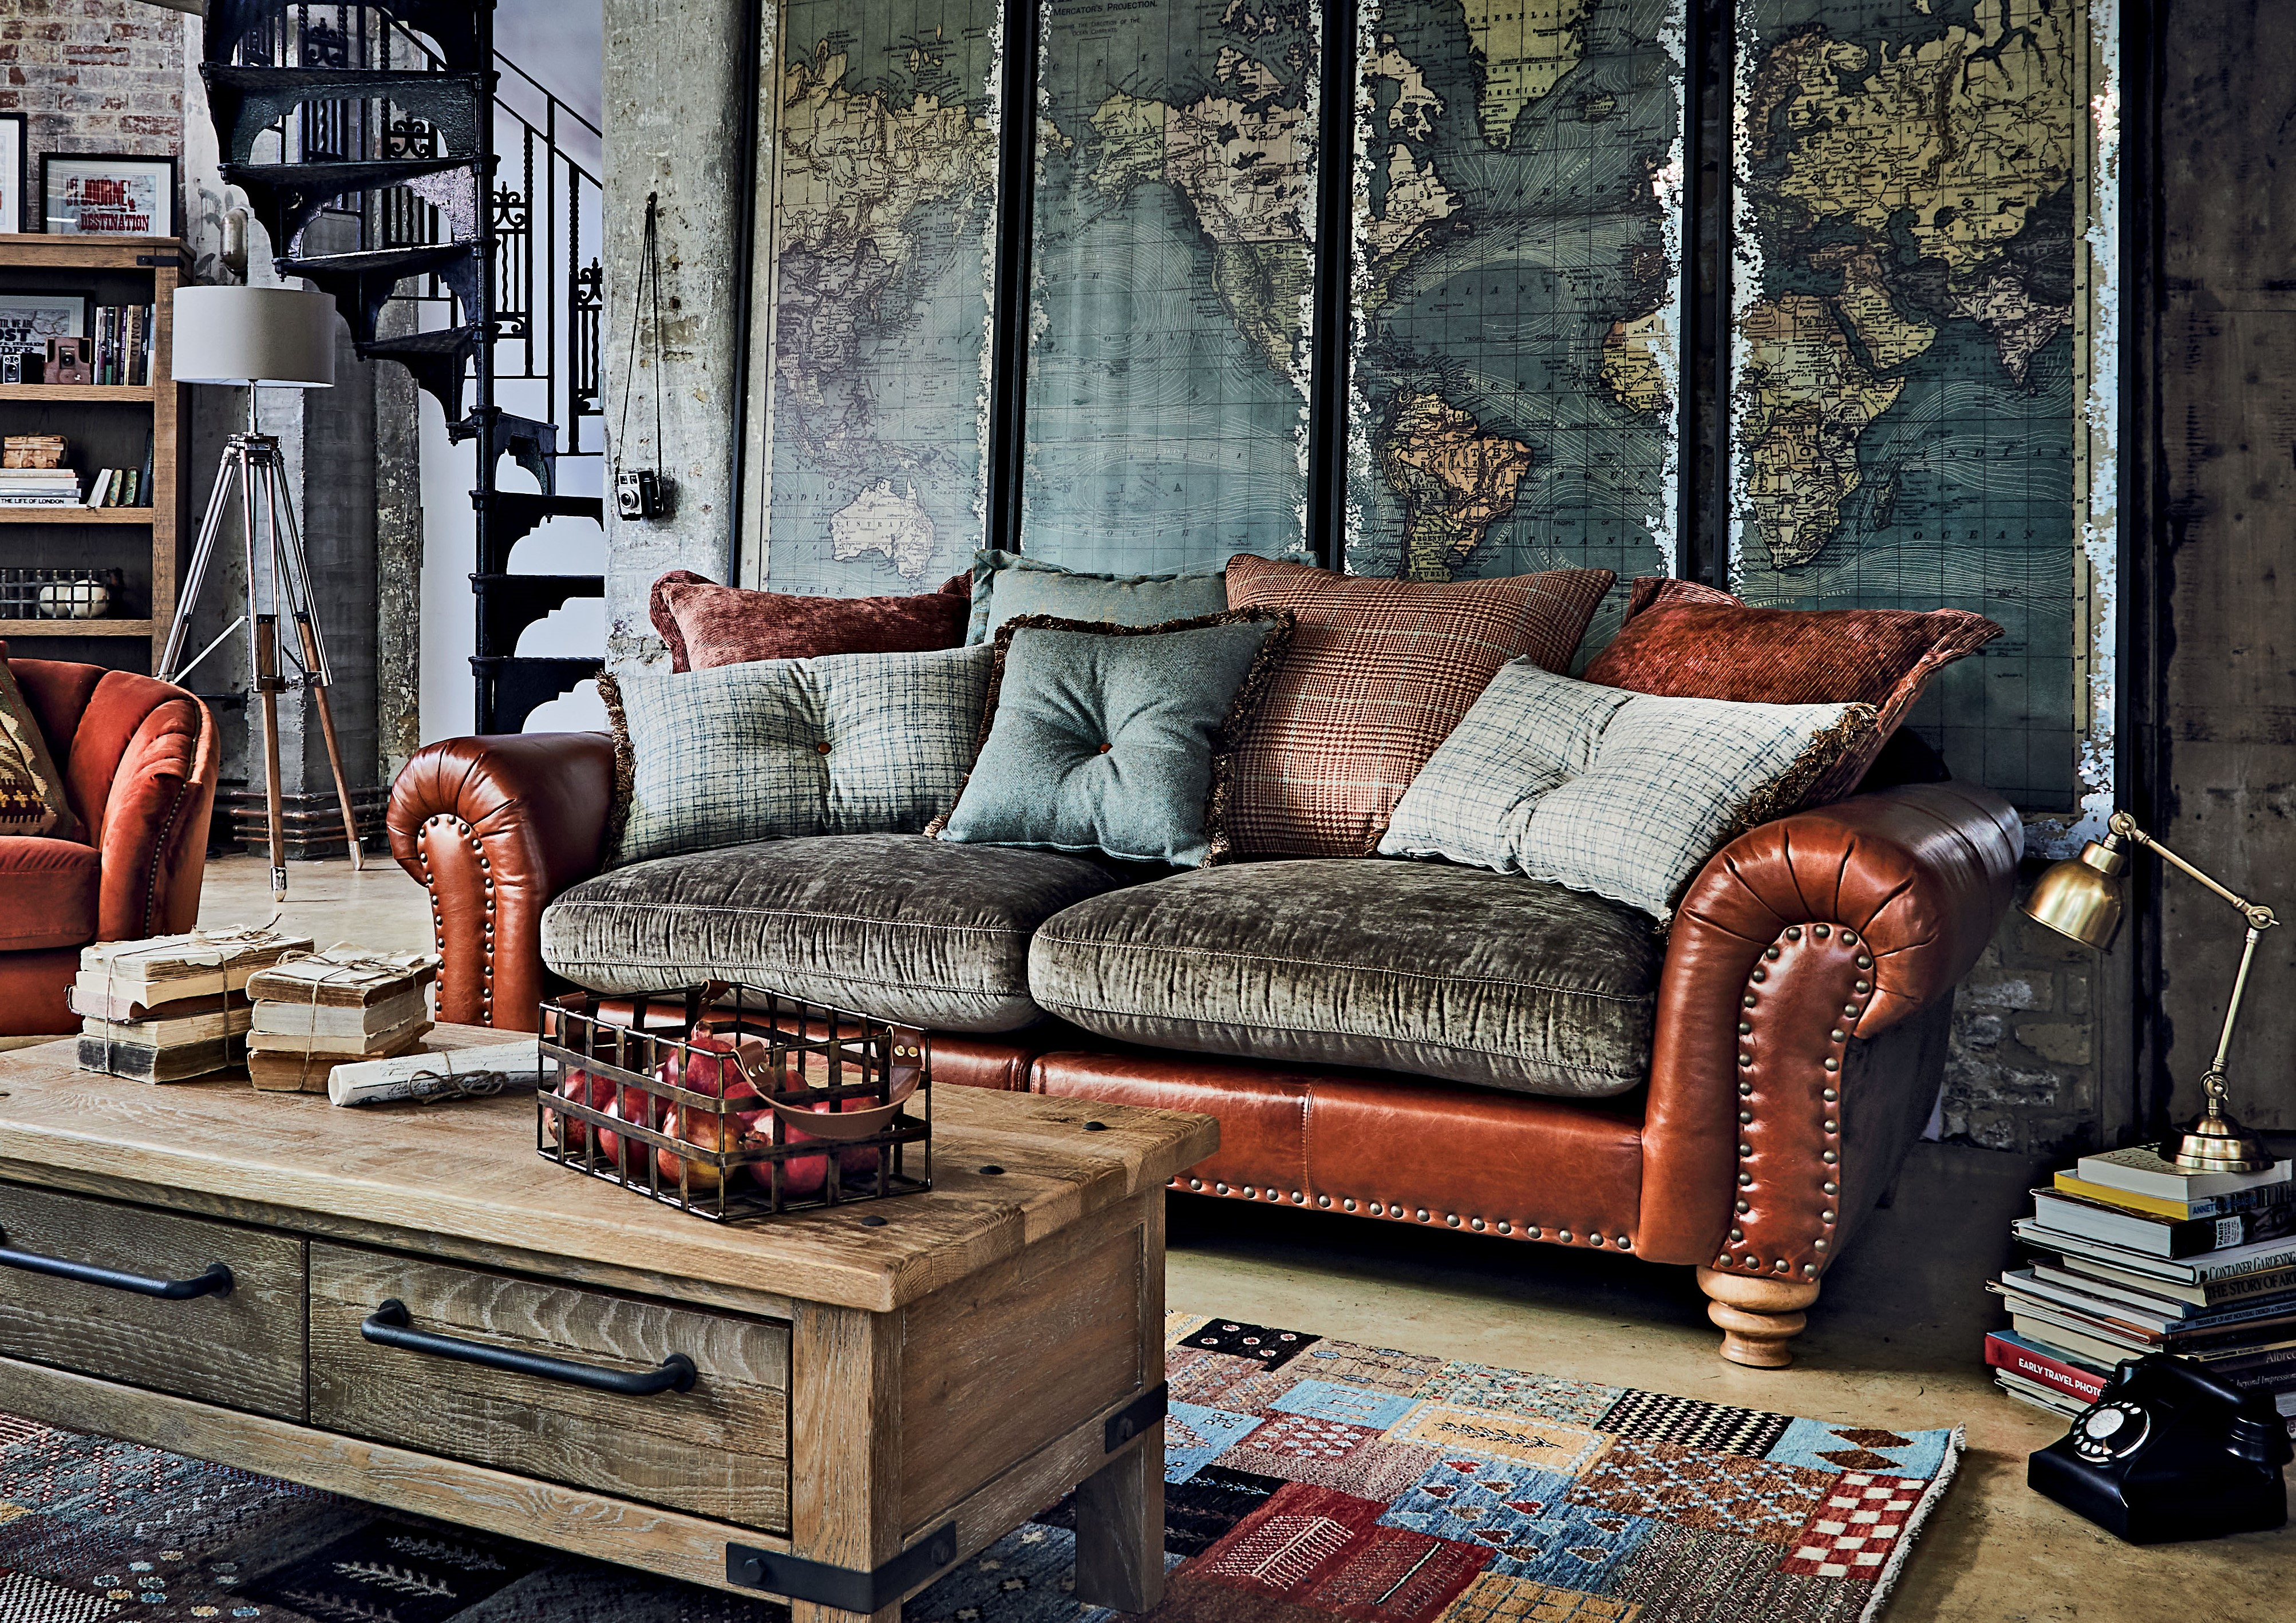 Decor Desires 3 Gorgeous New Interiors Trends To Try In